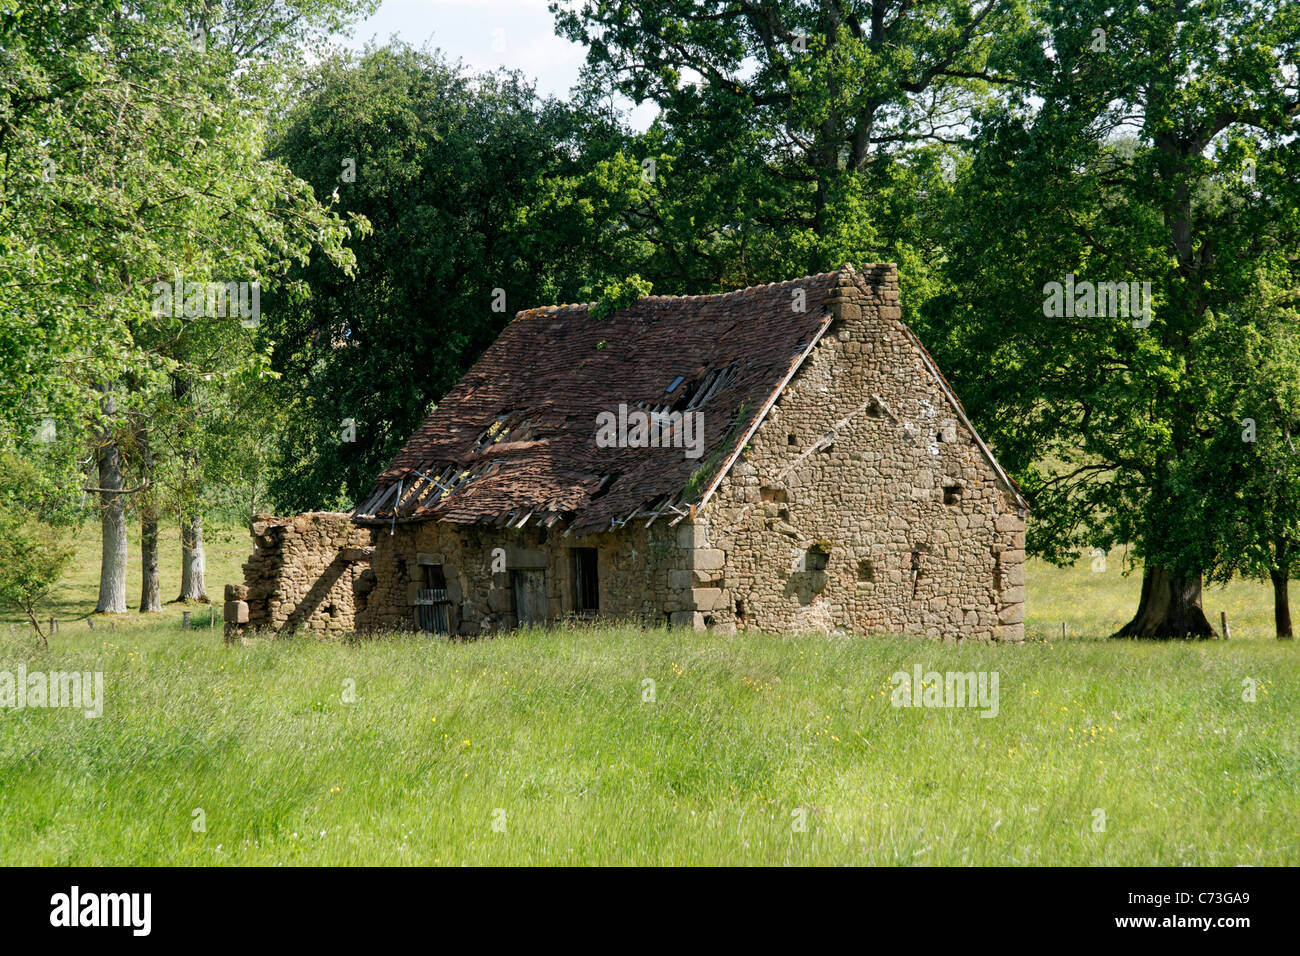 Old Farm Building In The Grove Domfrontais Orne Normandy France Stock Photo Alamy